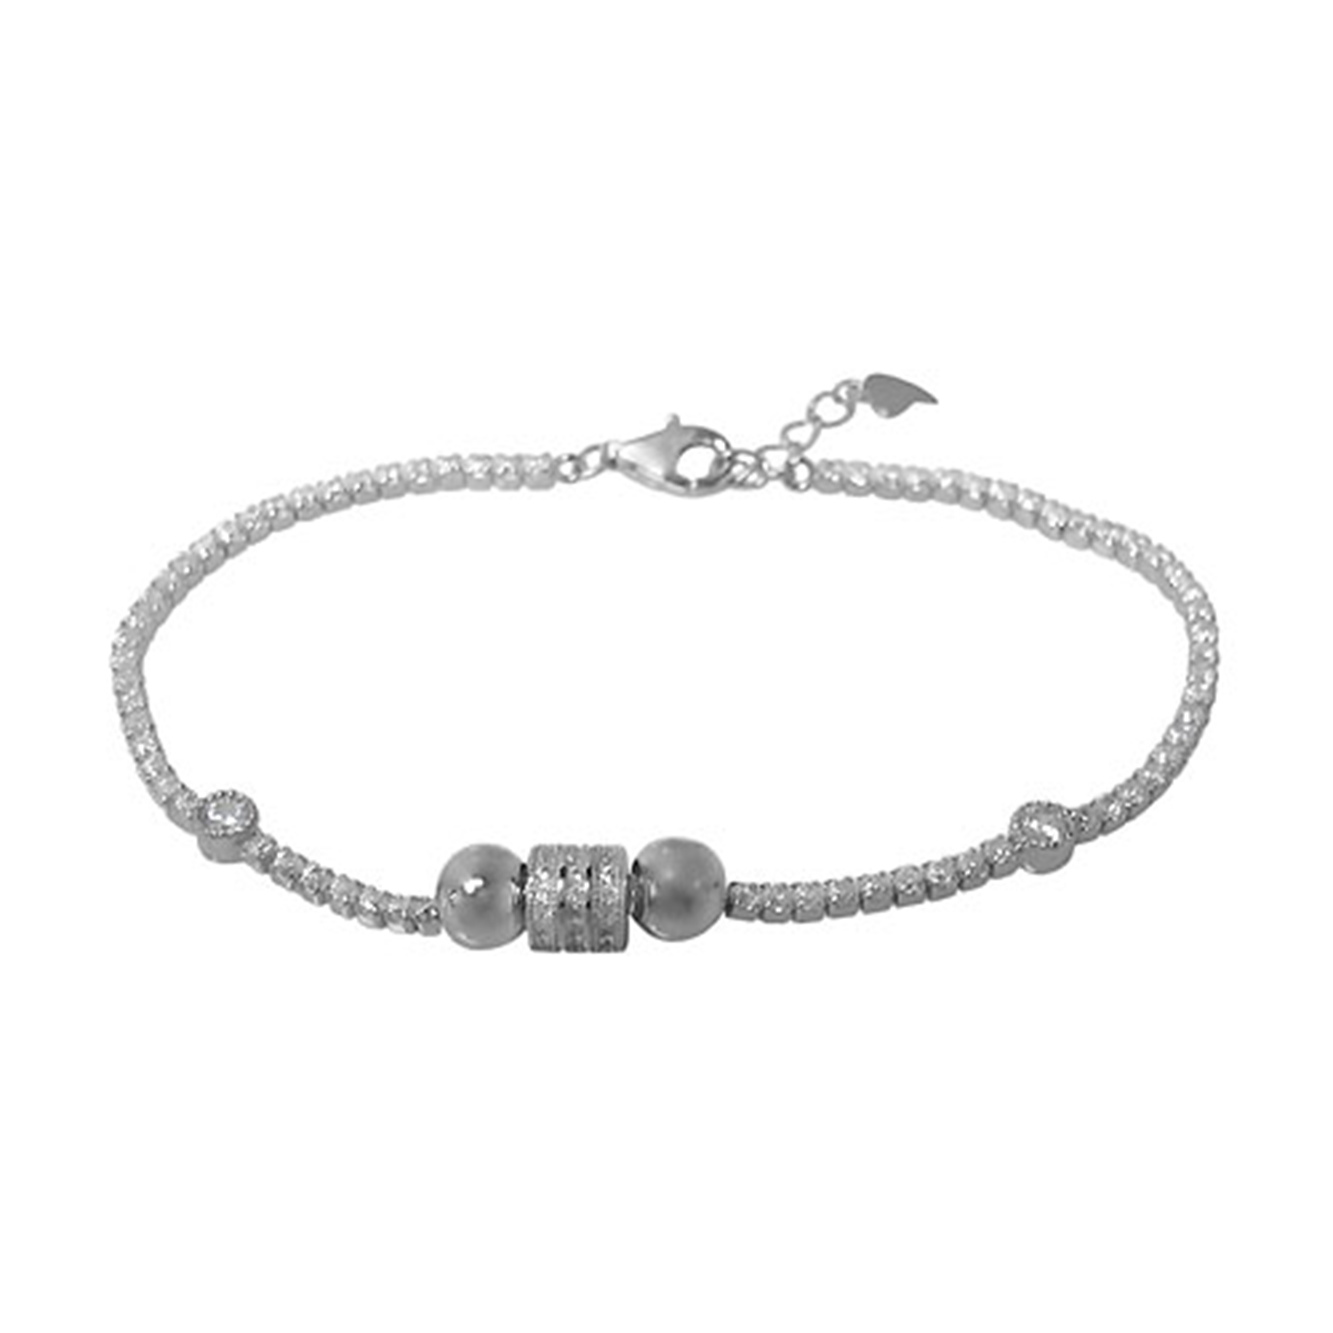 Tennis Bracelet, Sterling Silver with Rhodium, 7 inch